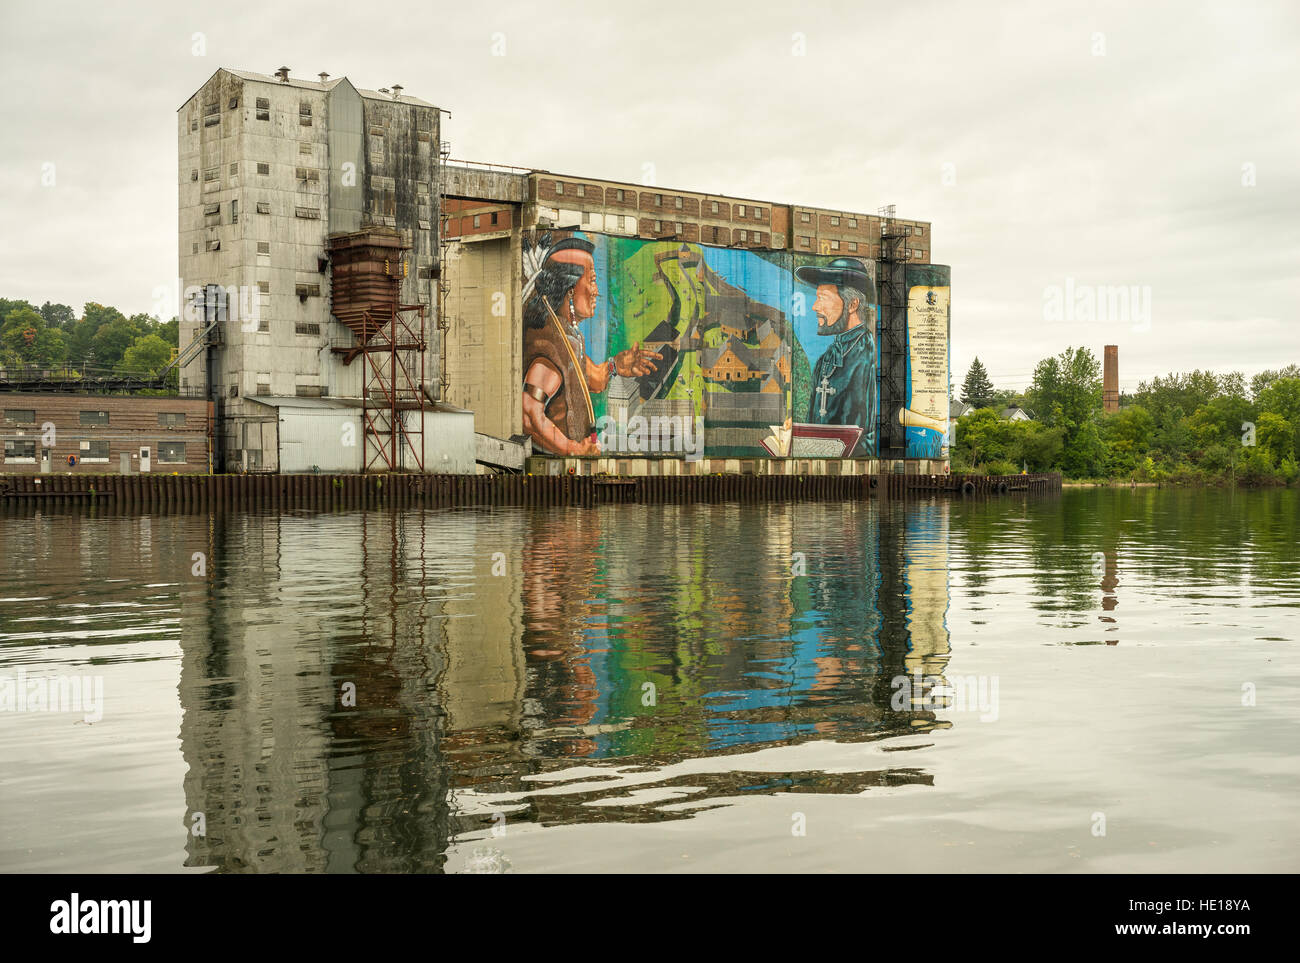 Grain Elevators With Colourful Painting Reflected in Harbour Water - Stock Image